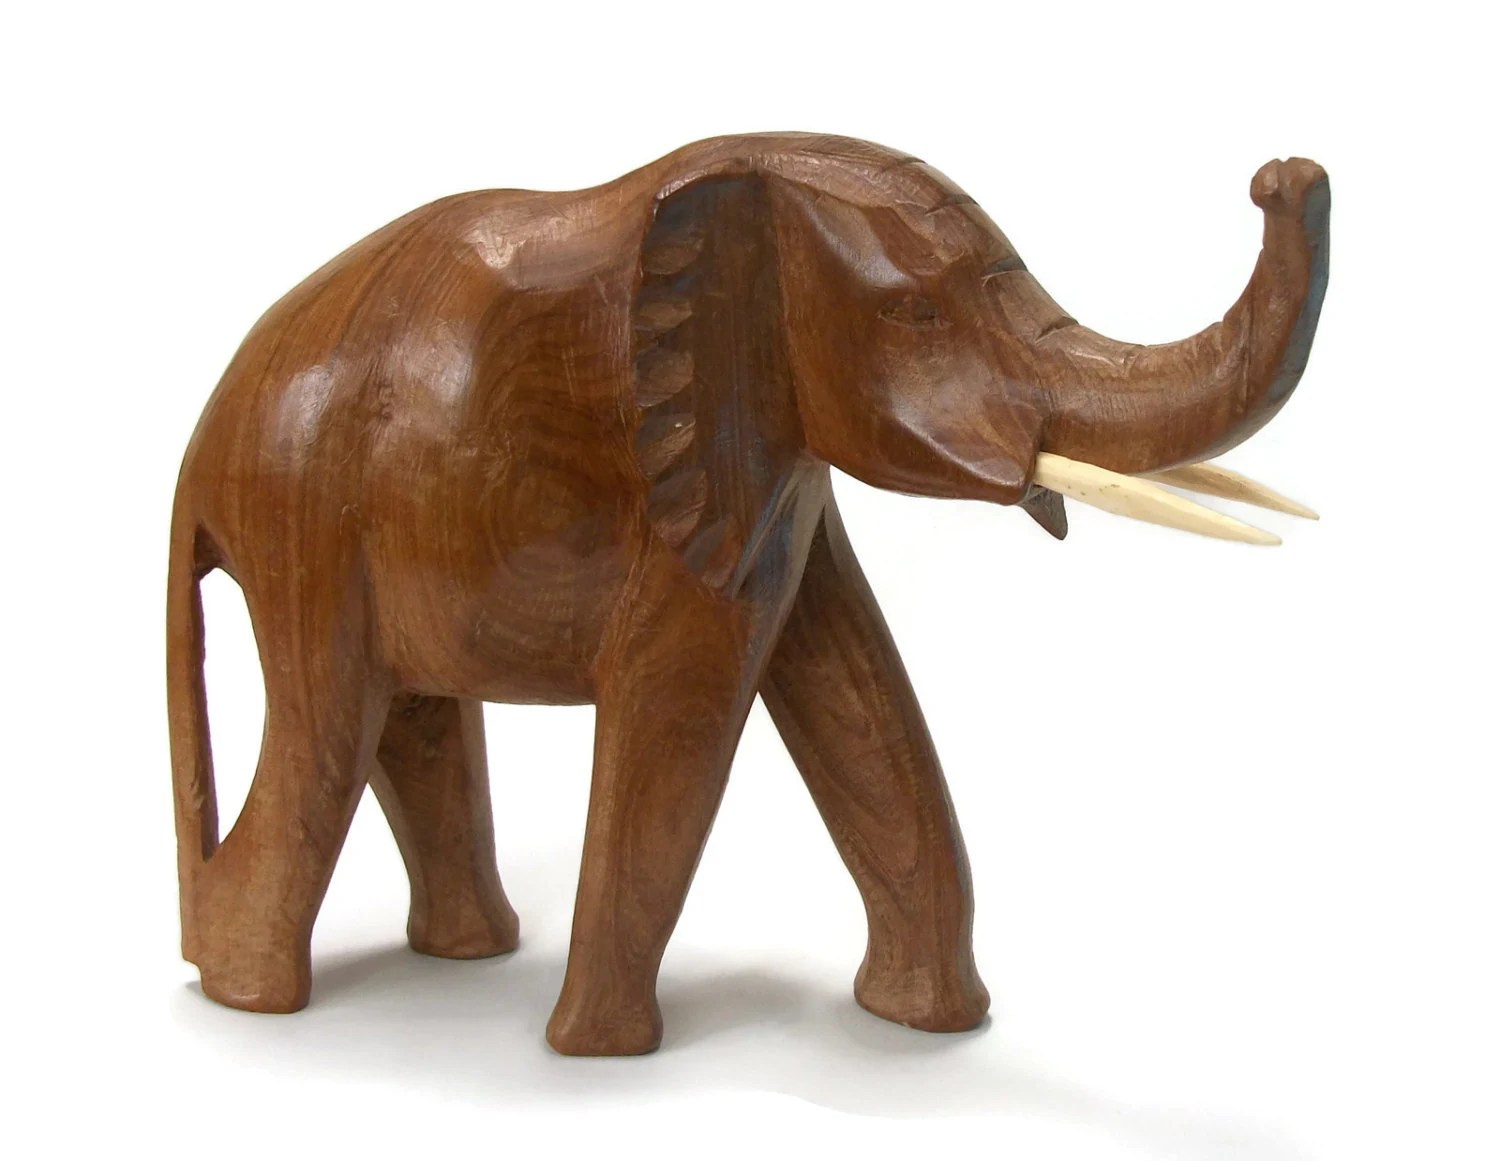 Wooden Elephants Figurines Large Heavy Hand Carved Wooden Elephant Sculpture Figurine